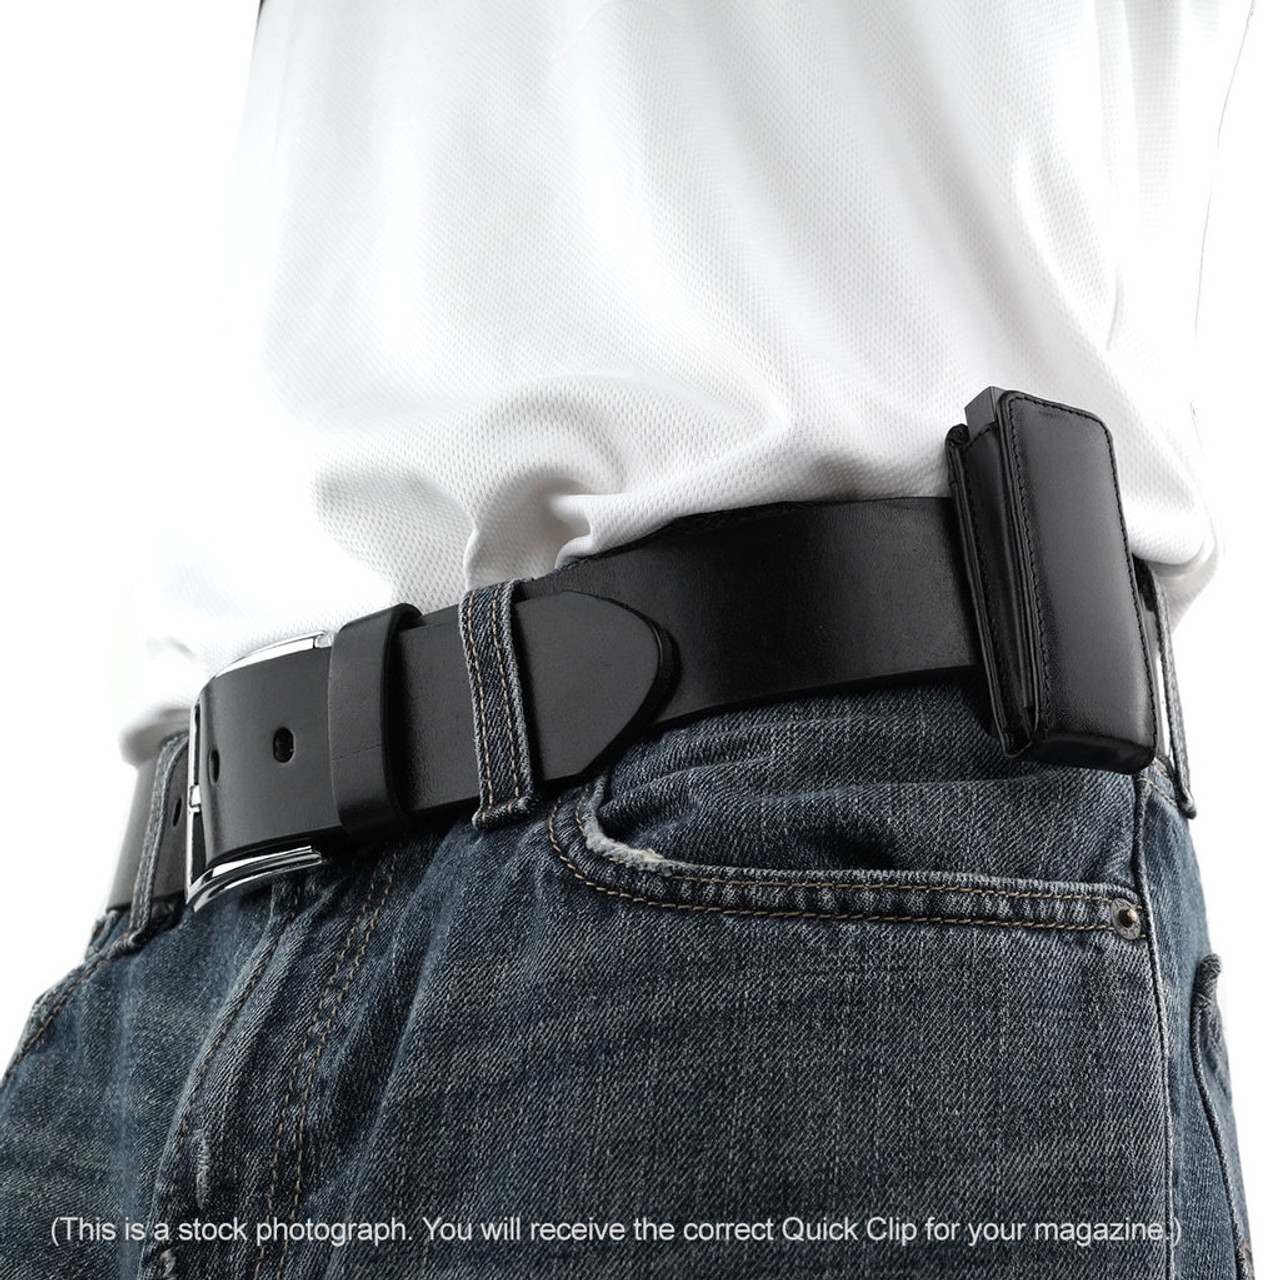 Walther PPK  Quick Clip Magazine Holster